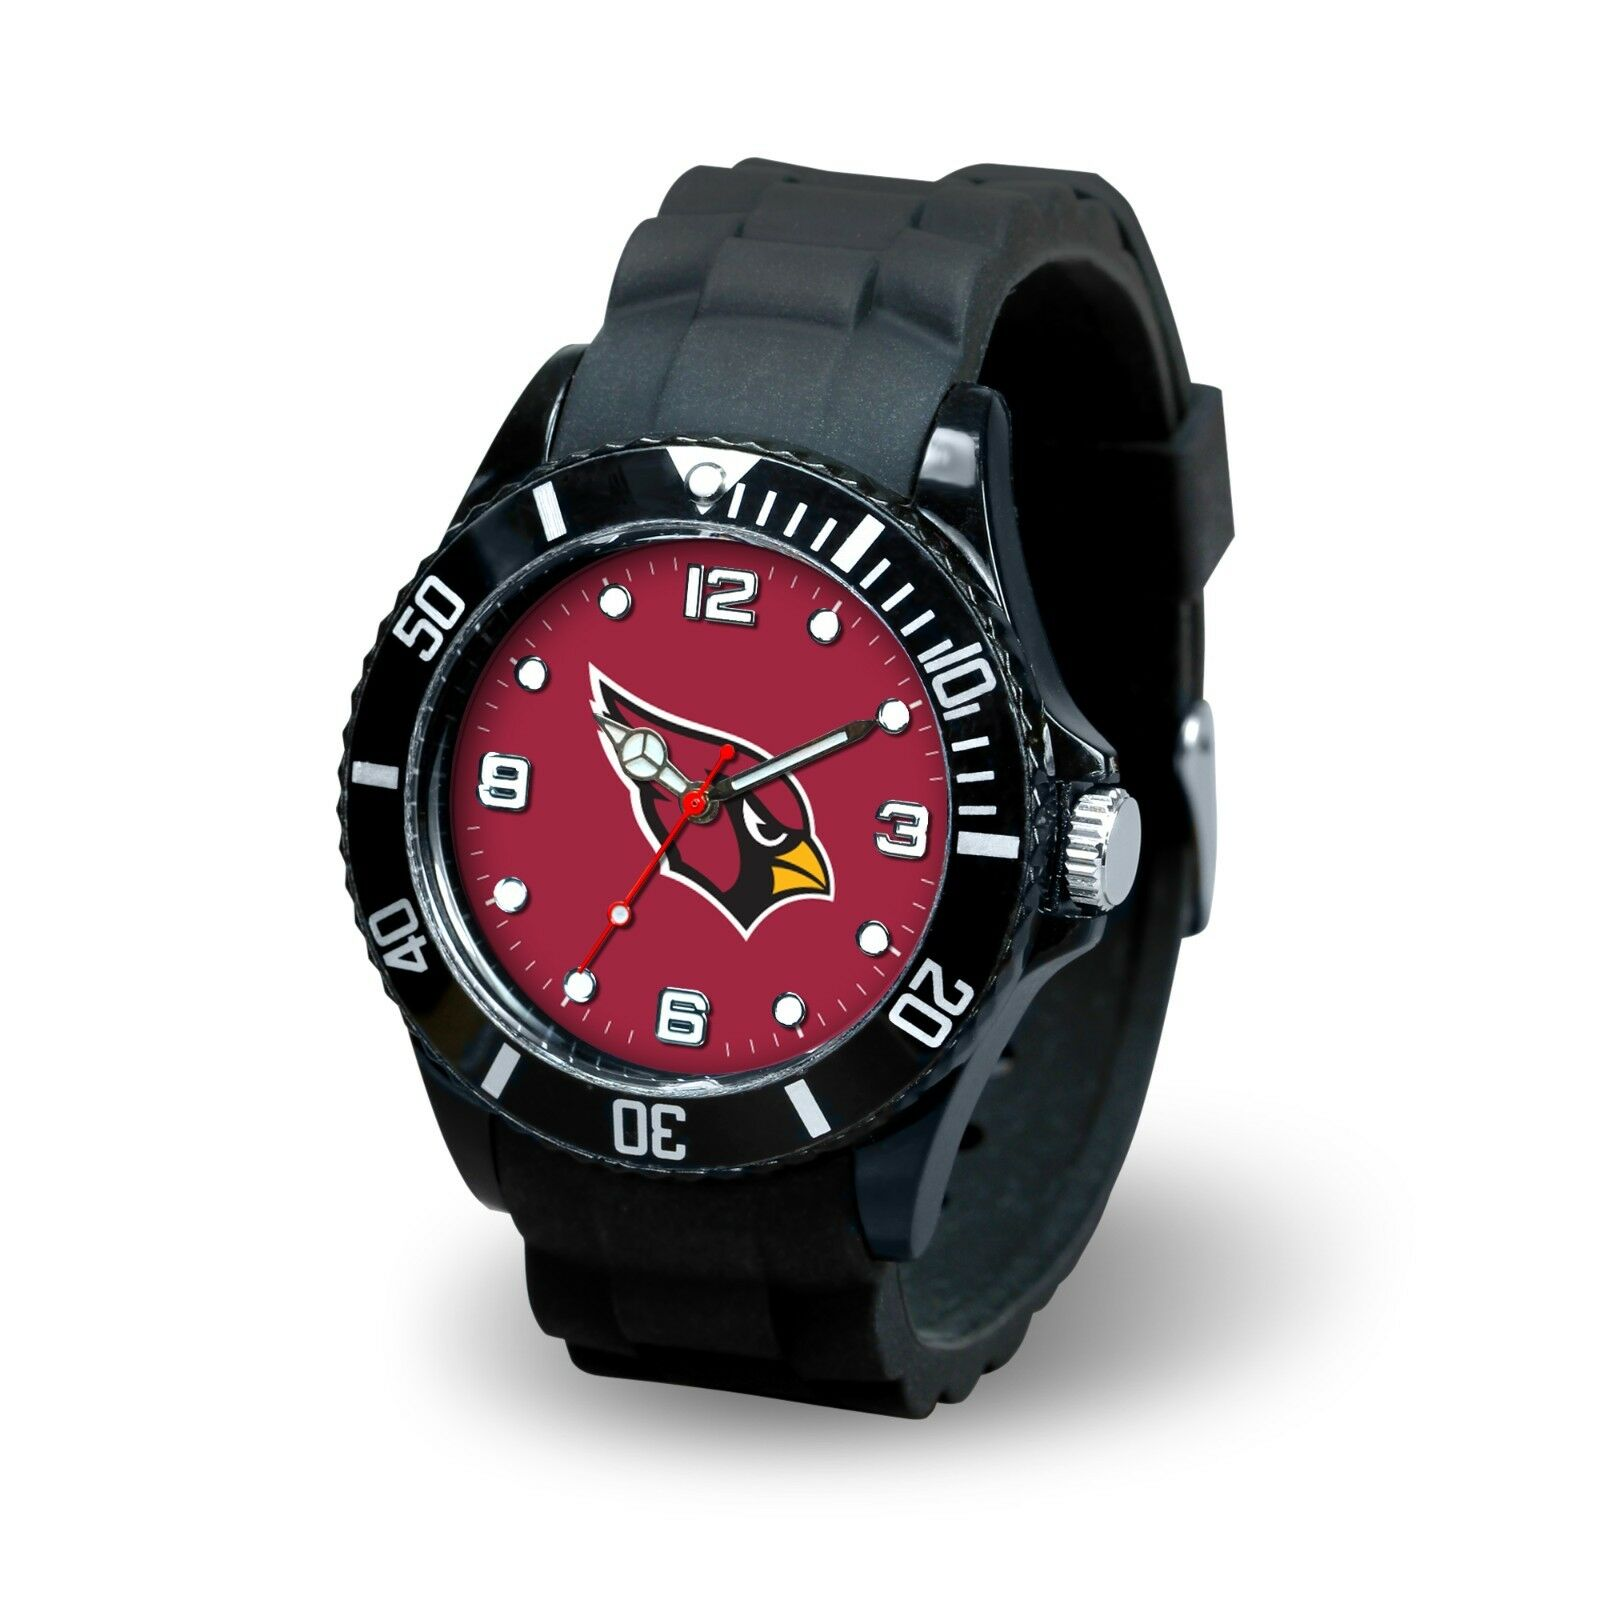 NFL Football Team Men's Black Sparo Spirit Watch  * Pick Your Team *